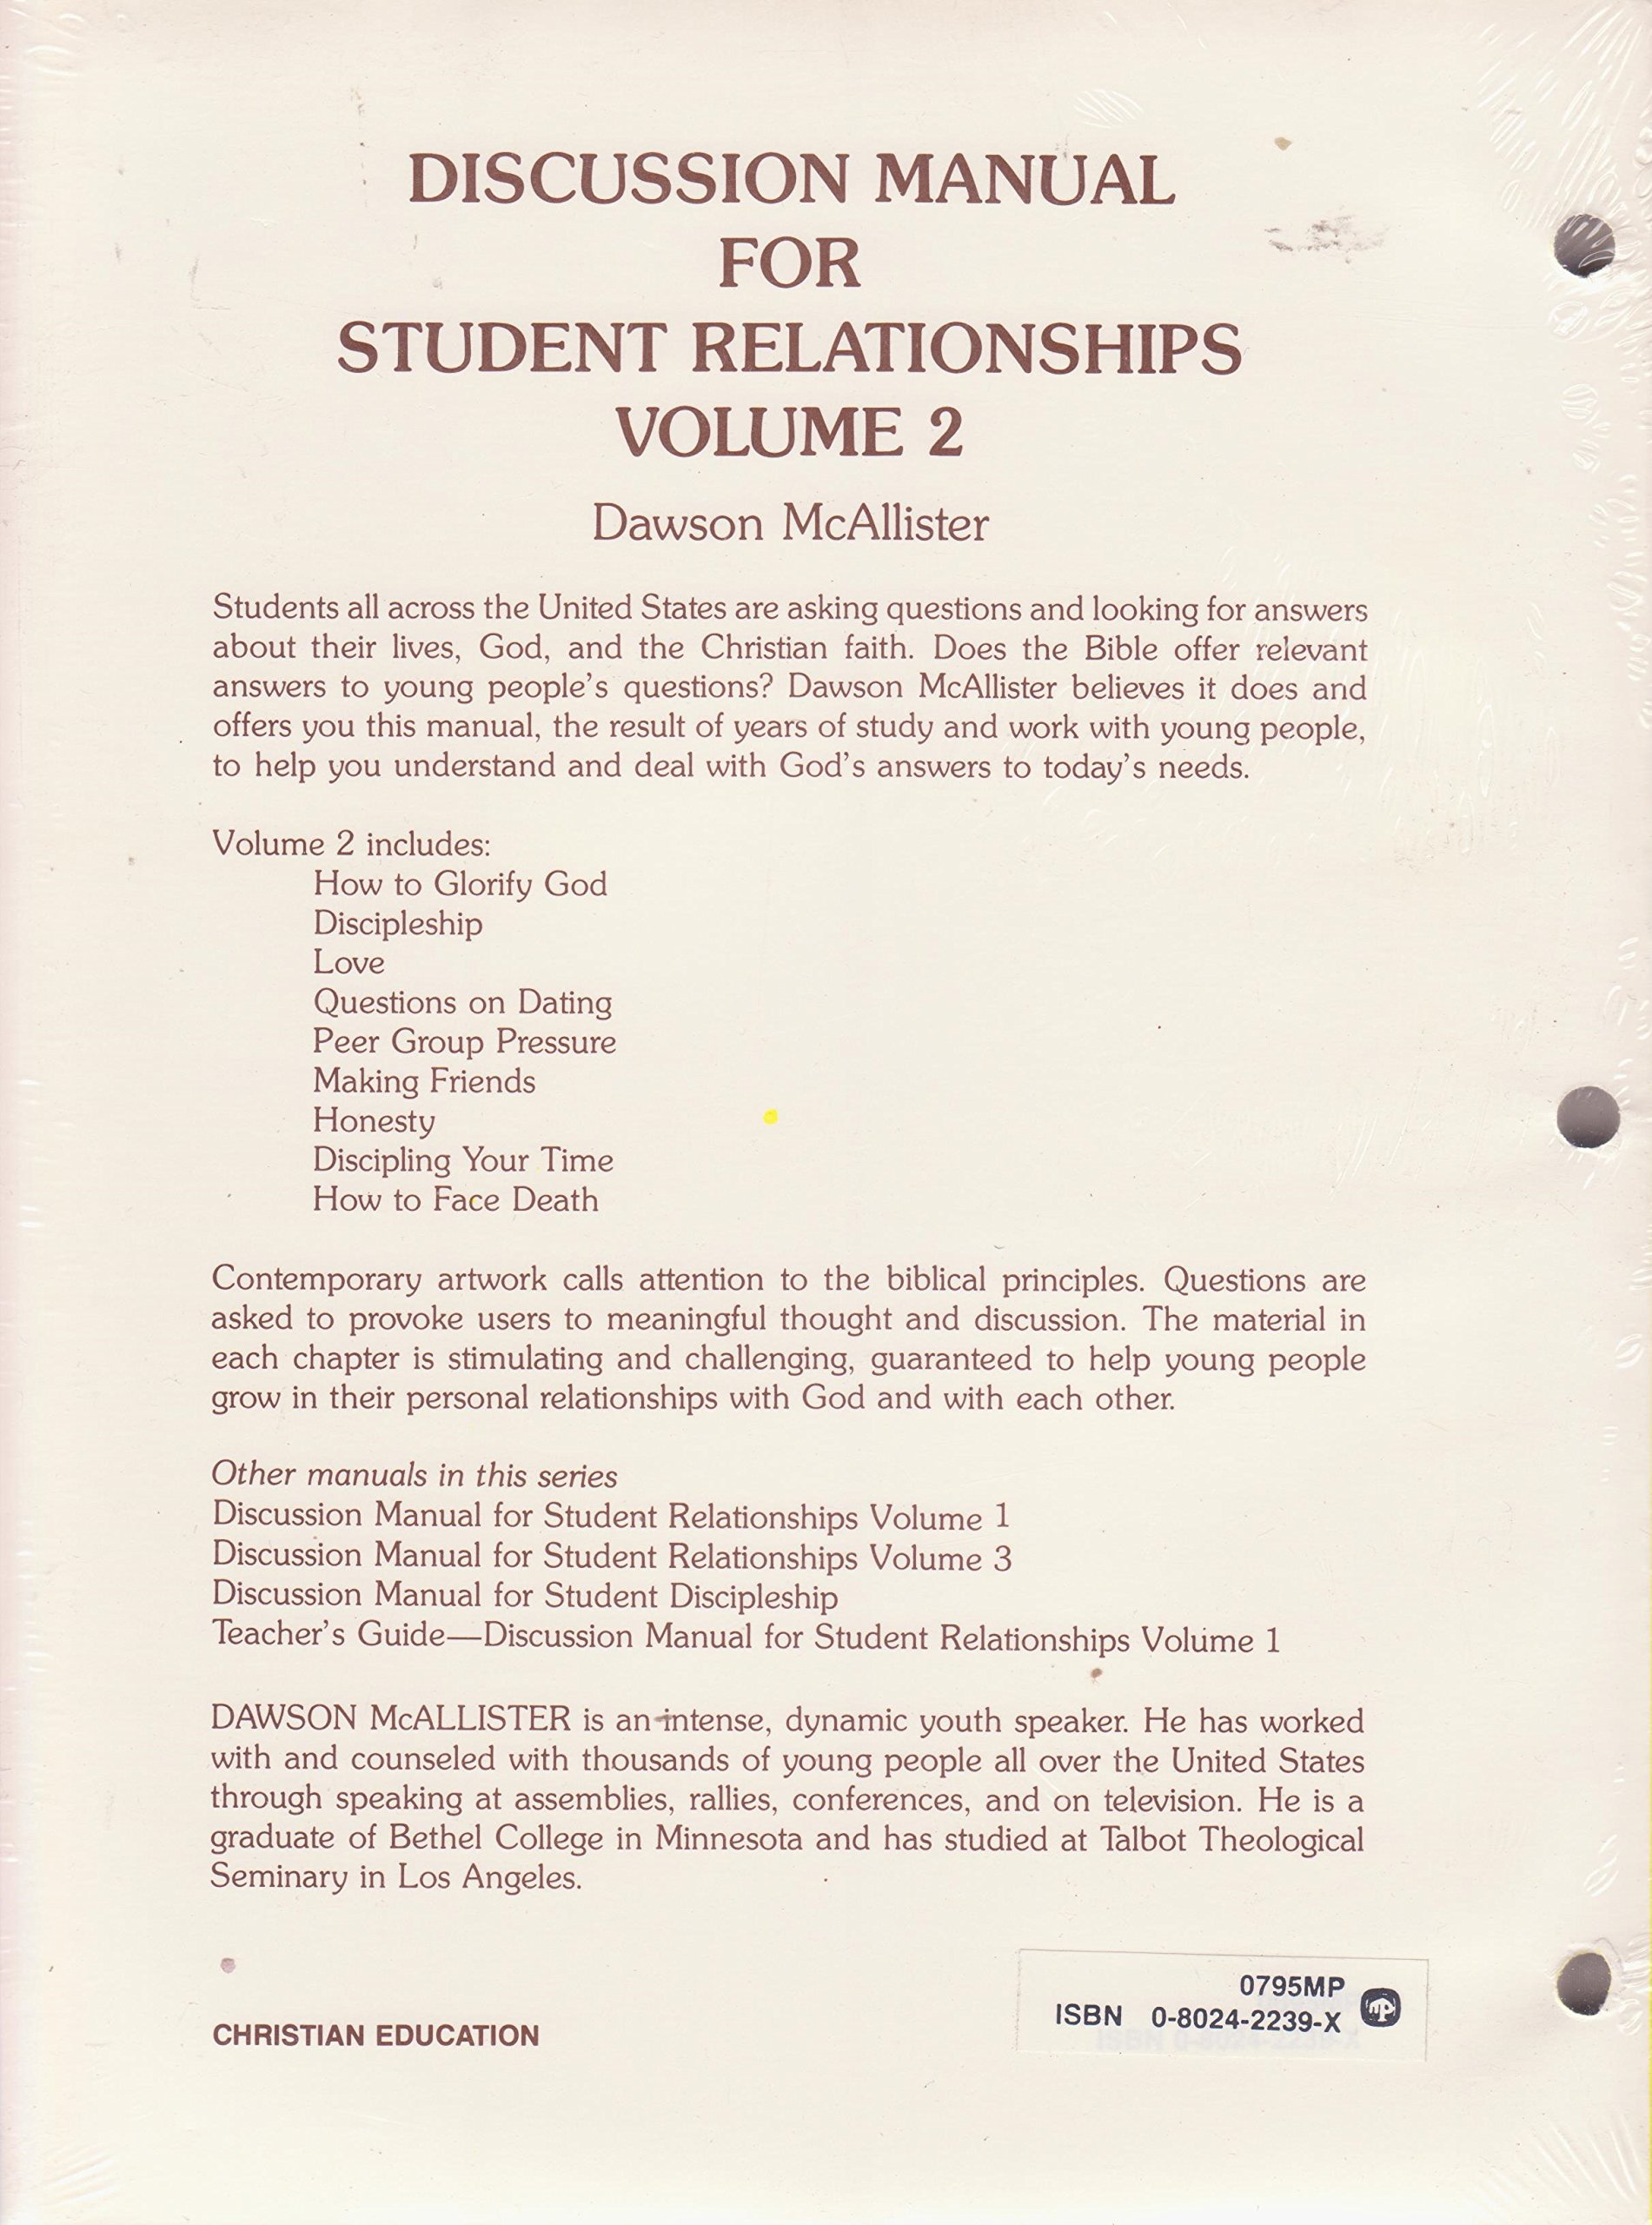 Discussion Manual for Student Relationships (Volume 2): McAllister Dawson,  Lamb Jim: 9780802422392: Amazon.com: Books